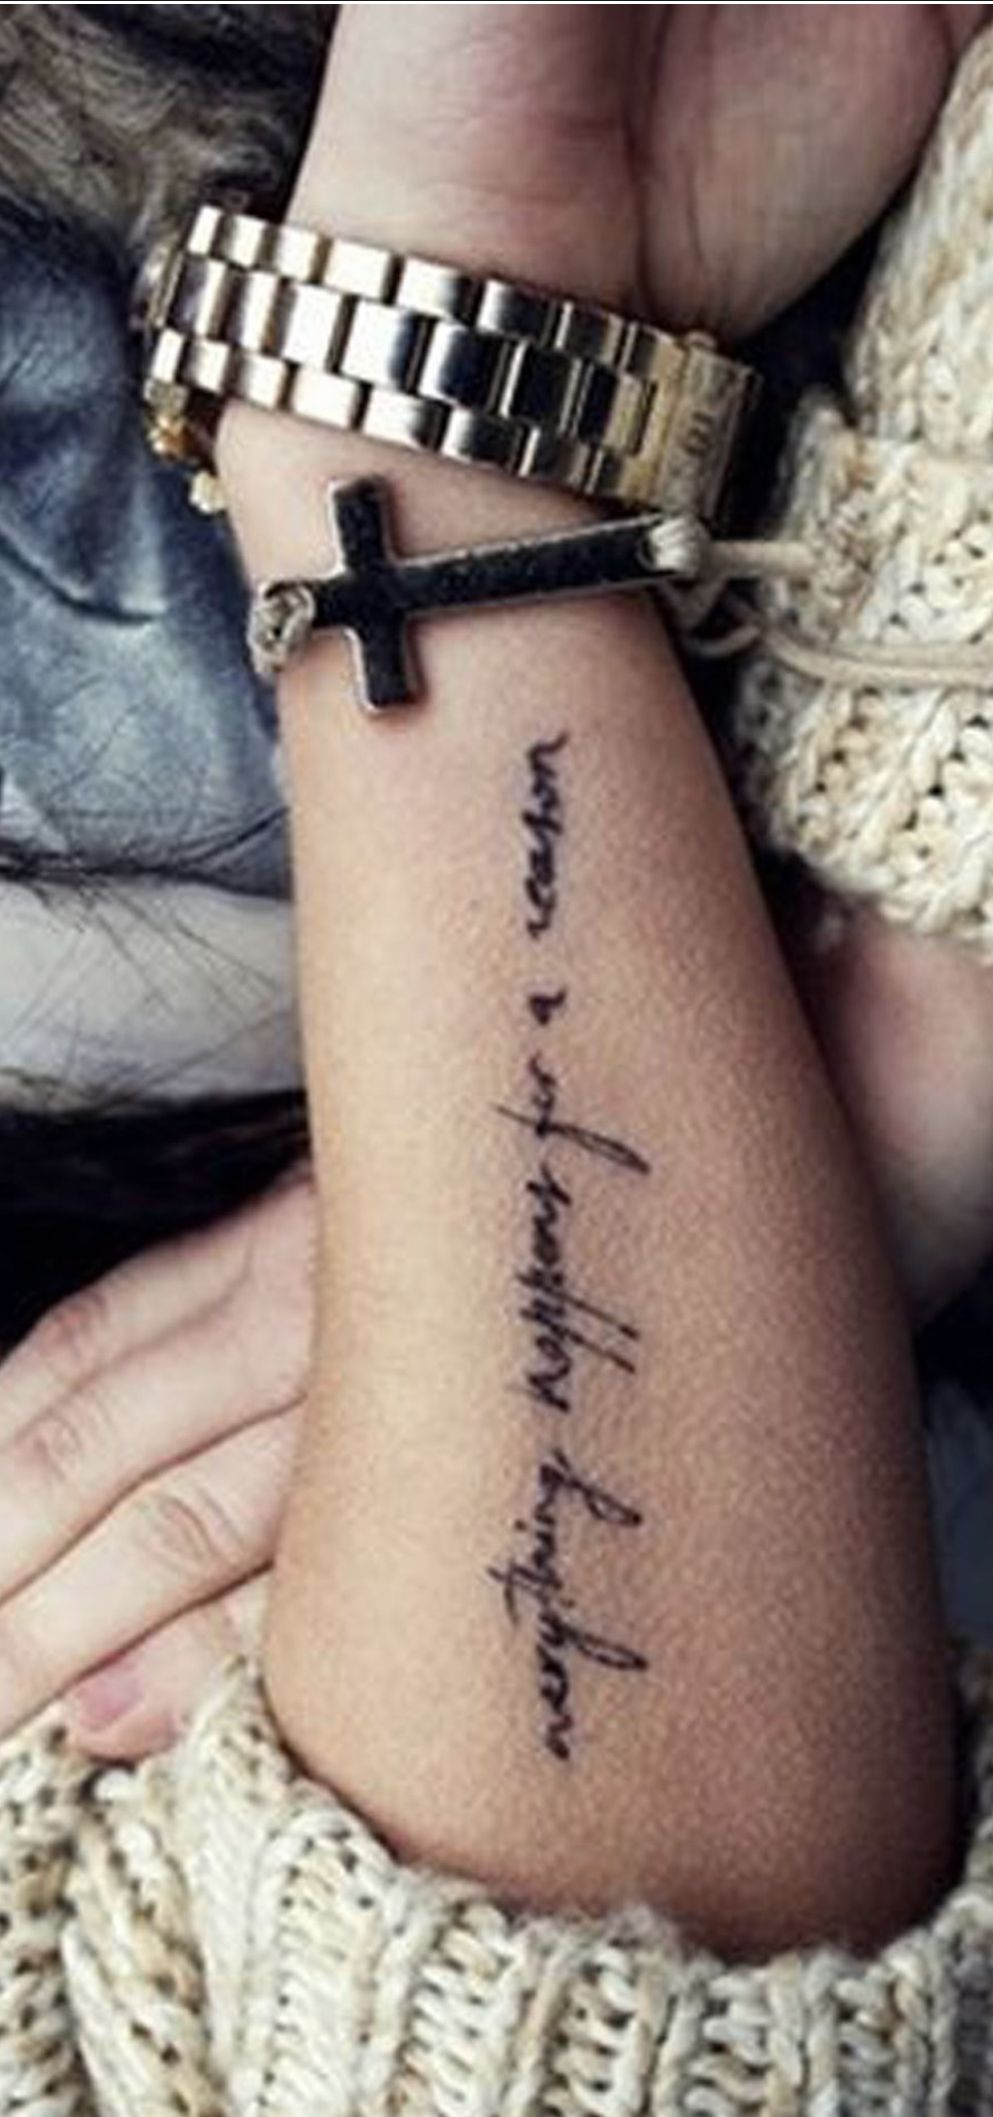 Pin By Stacey Powers On Ink Cursive Tattoos Tattoo Quotes For Women Quote Tattoos Girls